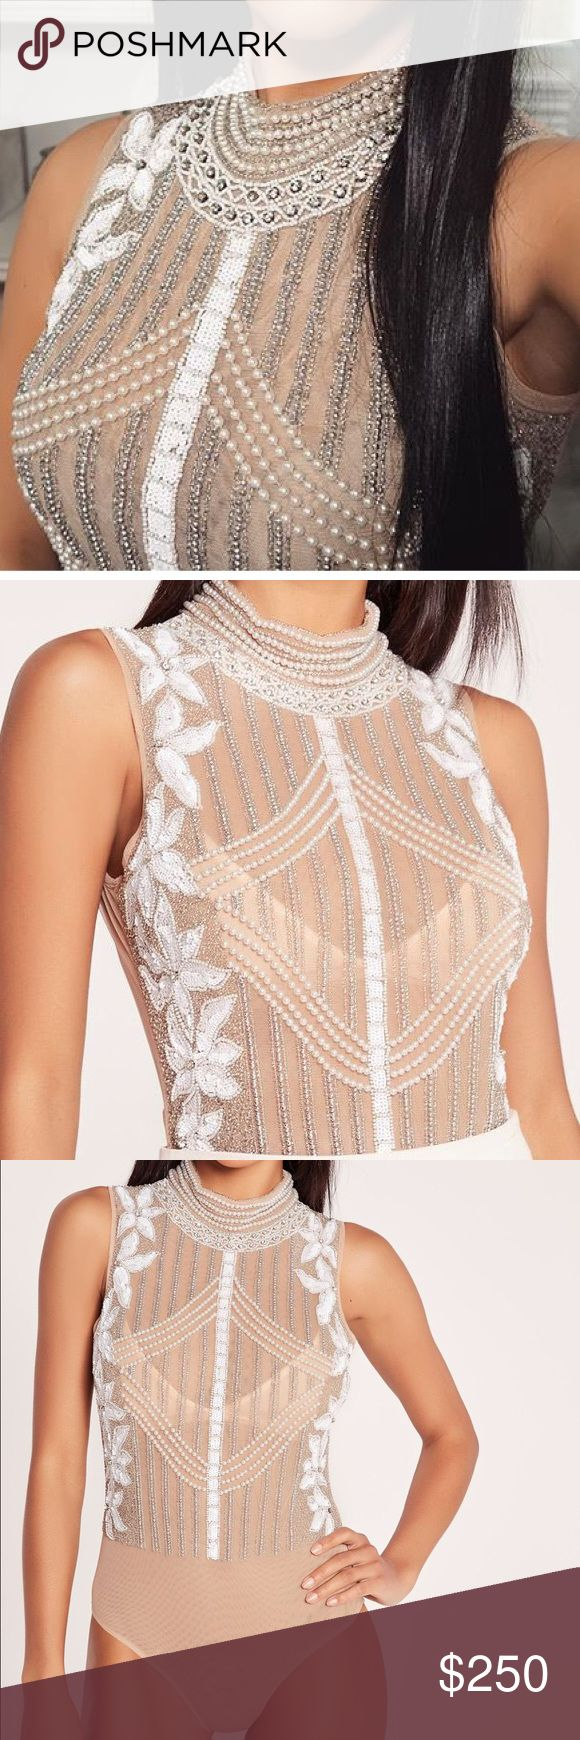 Vlogger Favorite Pearl Embellished BodySuit! This body suit is Sold out at retail stores! Limited Quantities Made. Worn once, includes extra beads. A Must Have in every fashionistas collection! This is a once in a lifetime piece Tops